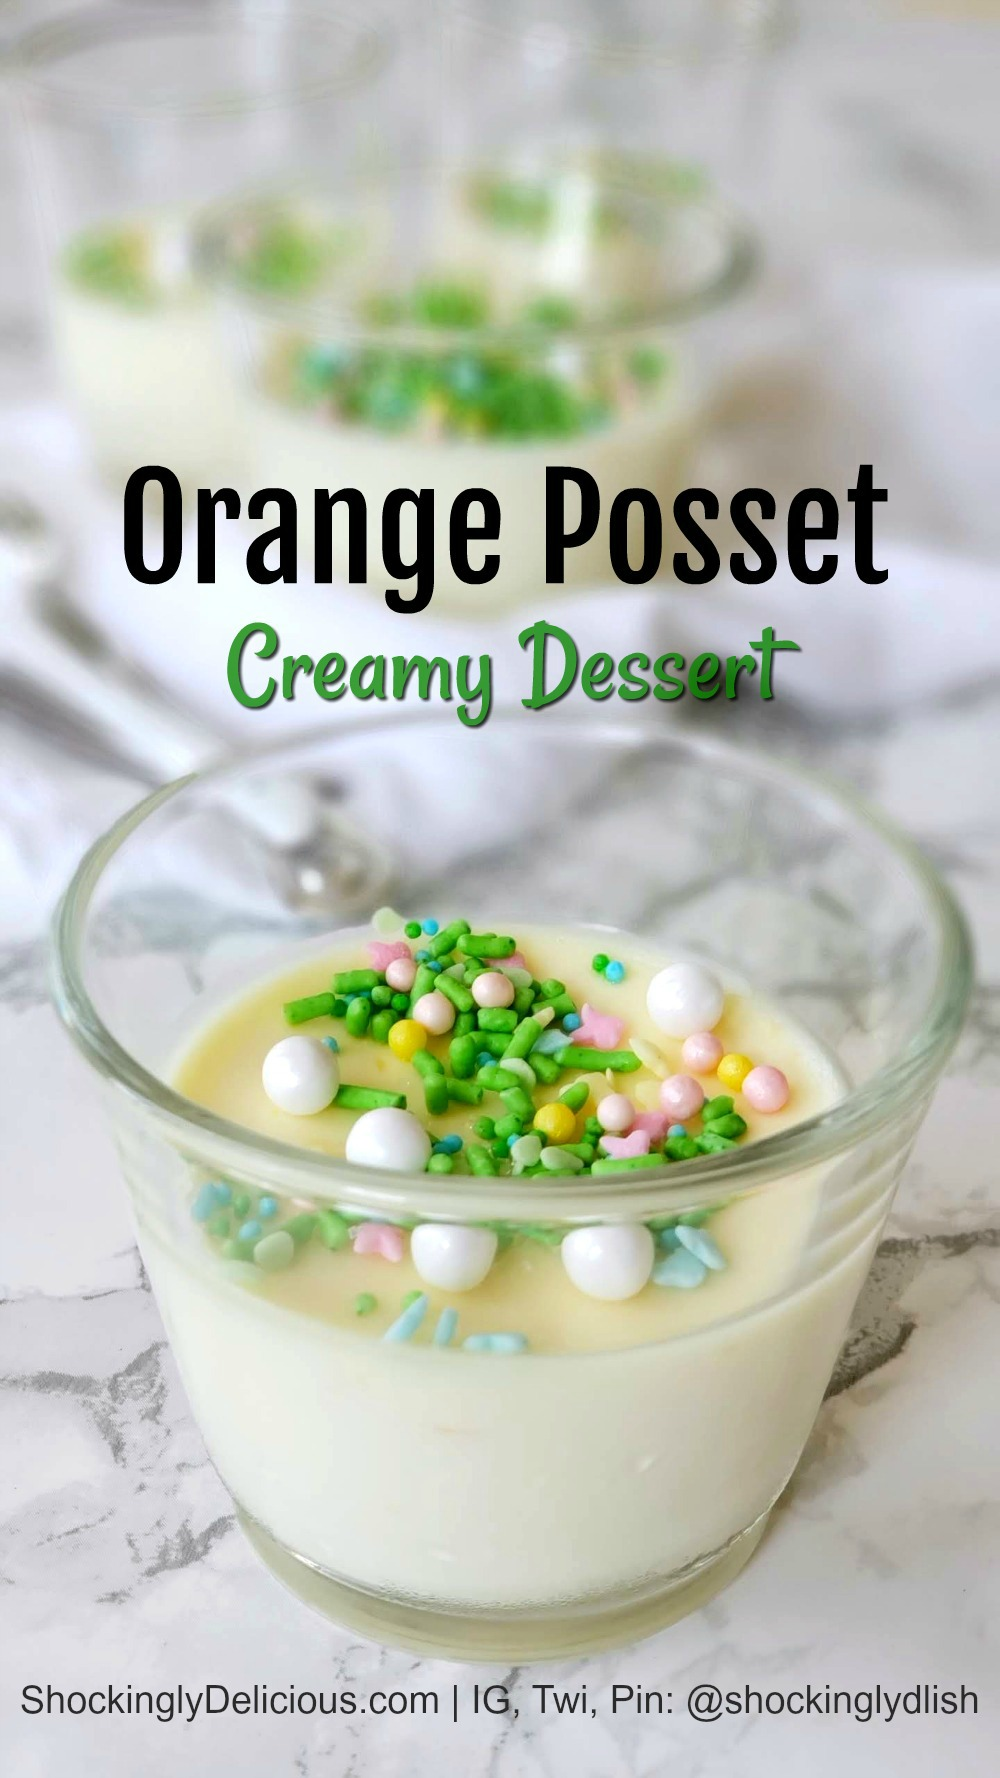 Orange Posset cup with sprinkles on top on a white marble counter